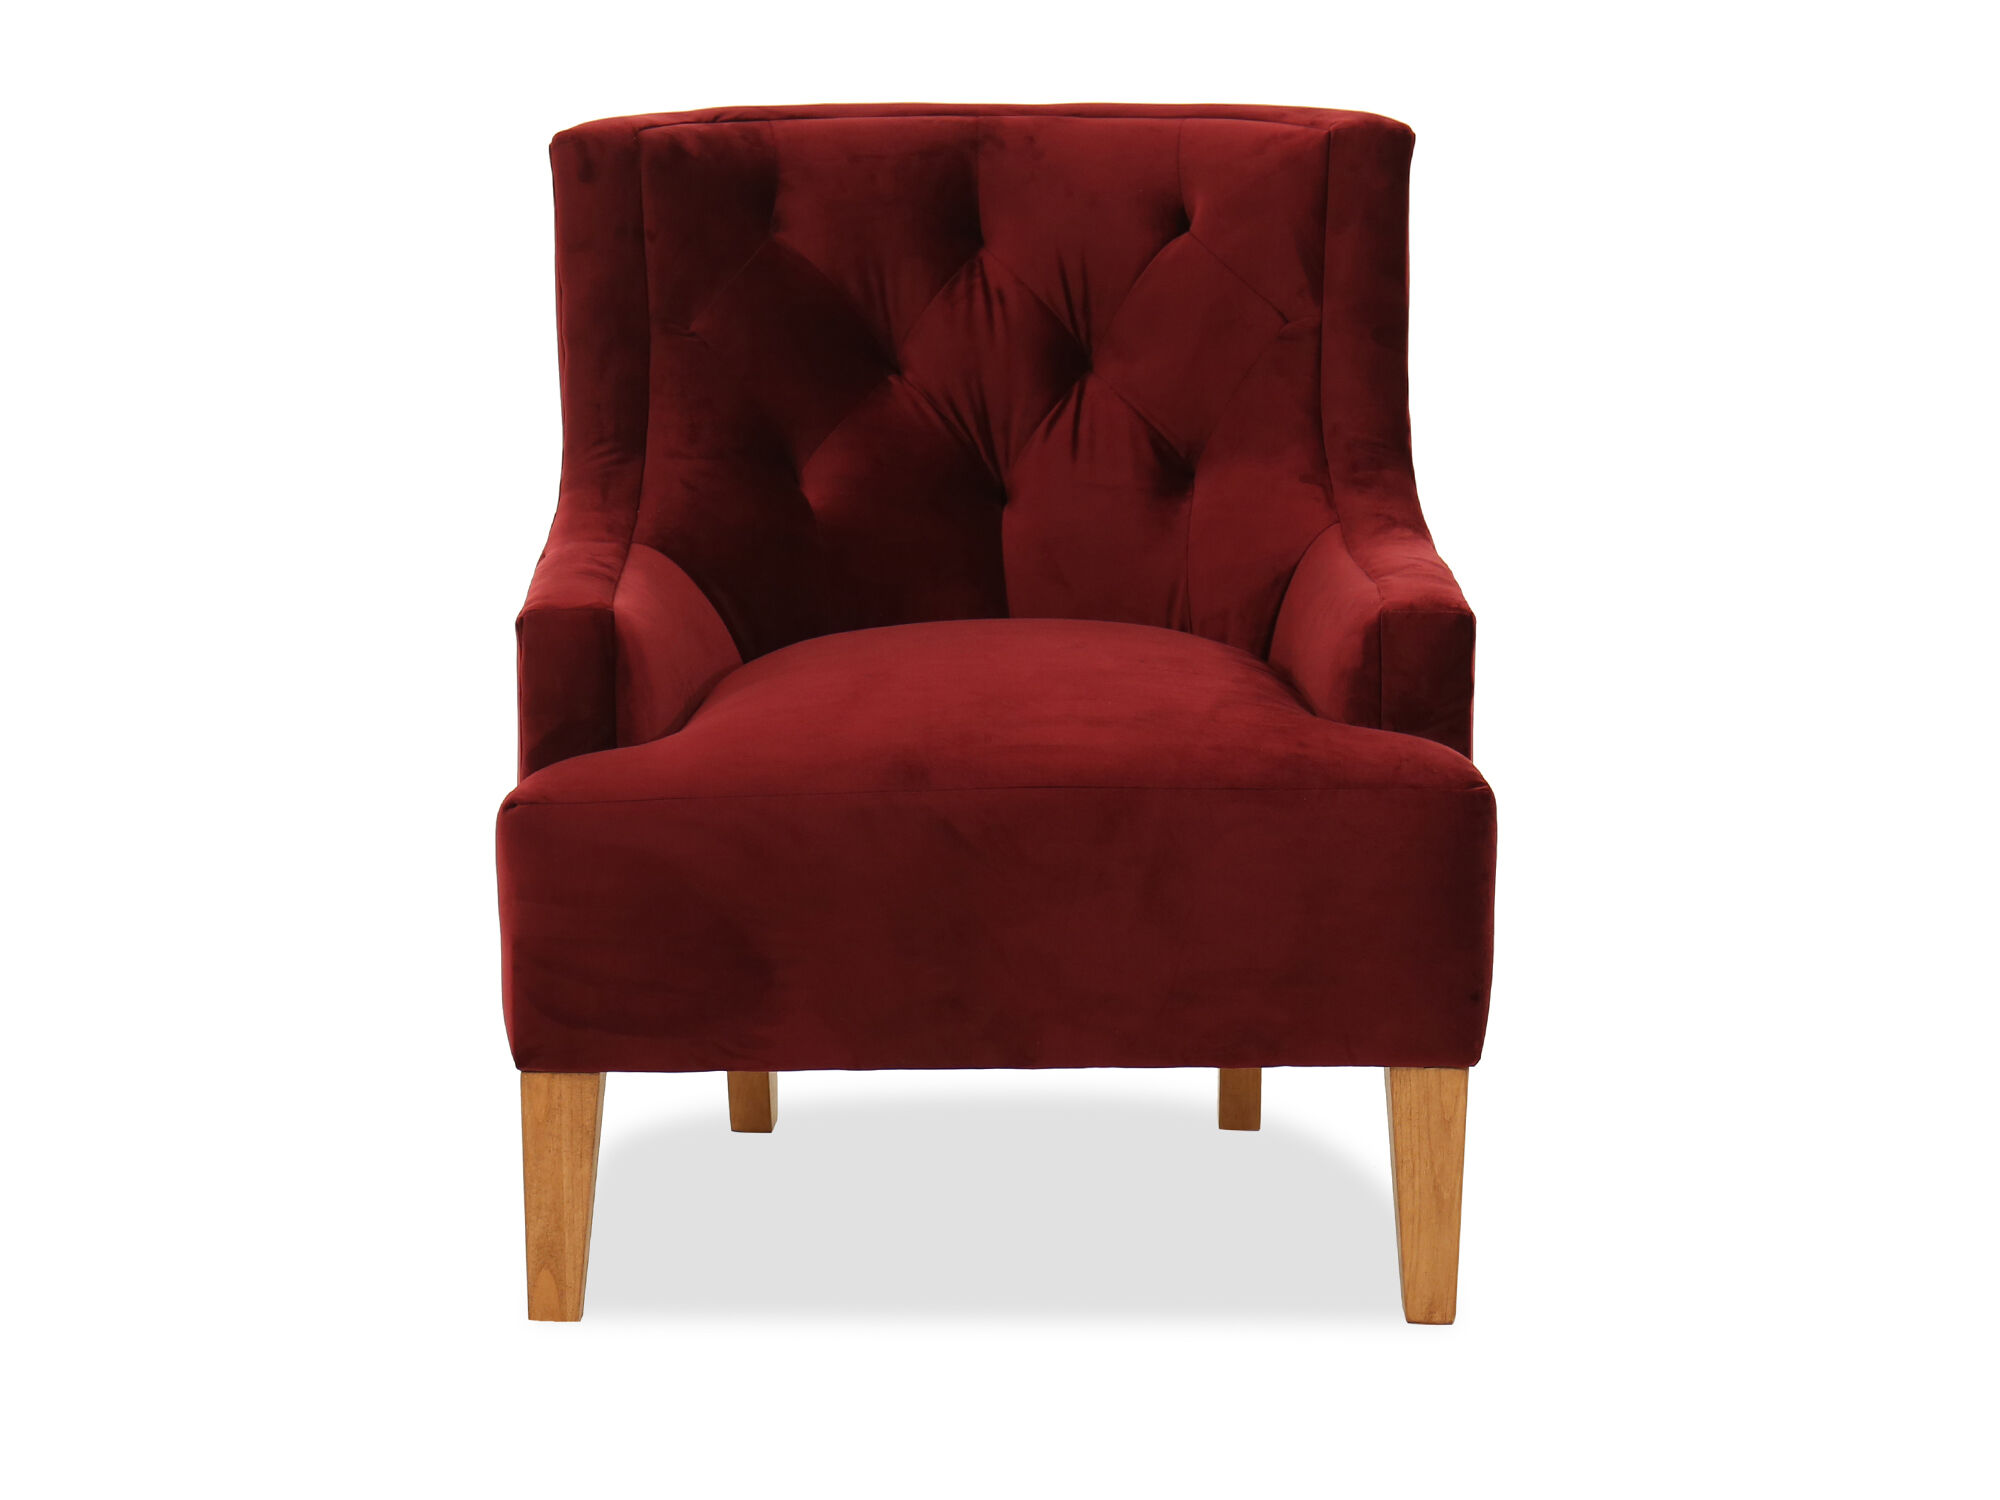 Images 30u0026quot; Tufted Transitional Accent Chair In Berry Red 30u0026quot;  Tufted Transitional Accent Chair In Berry Red